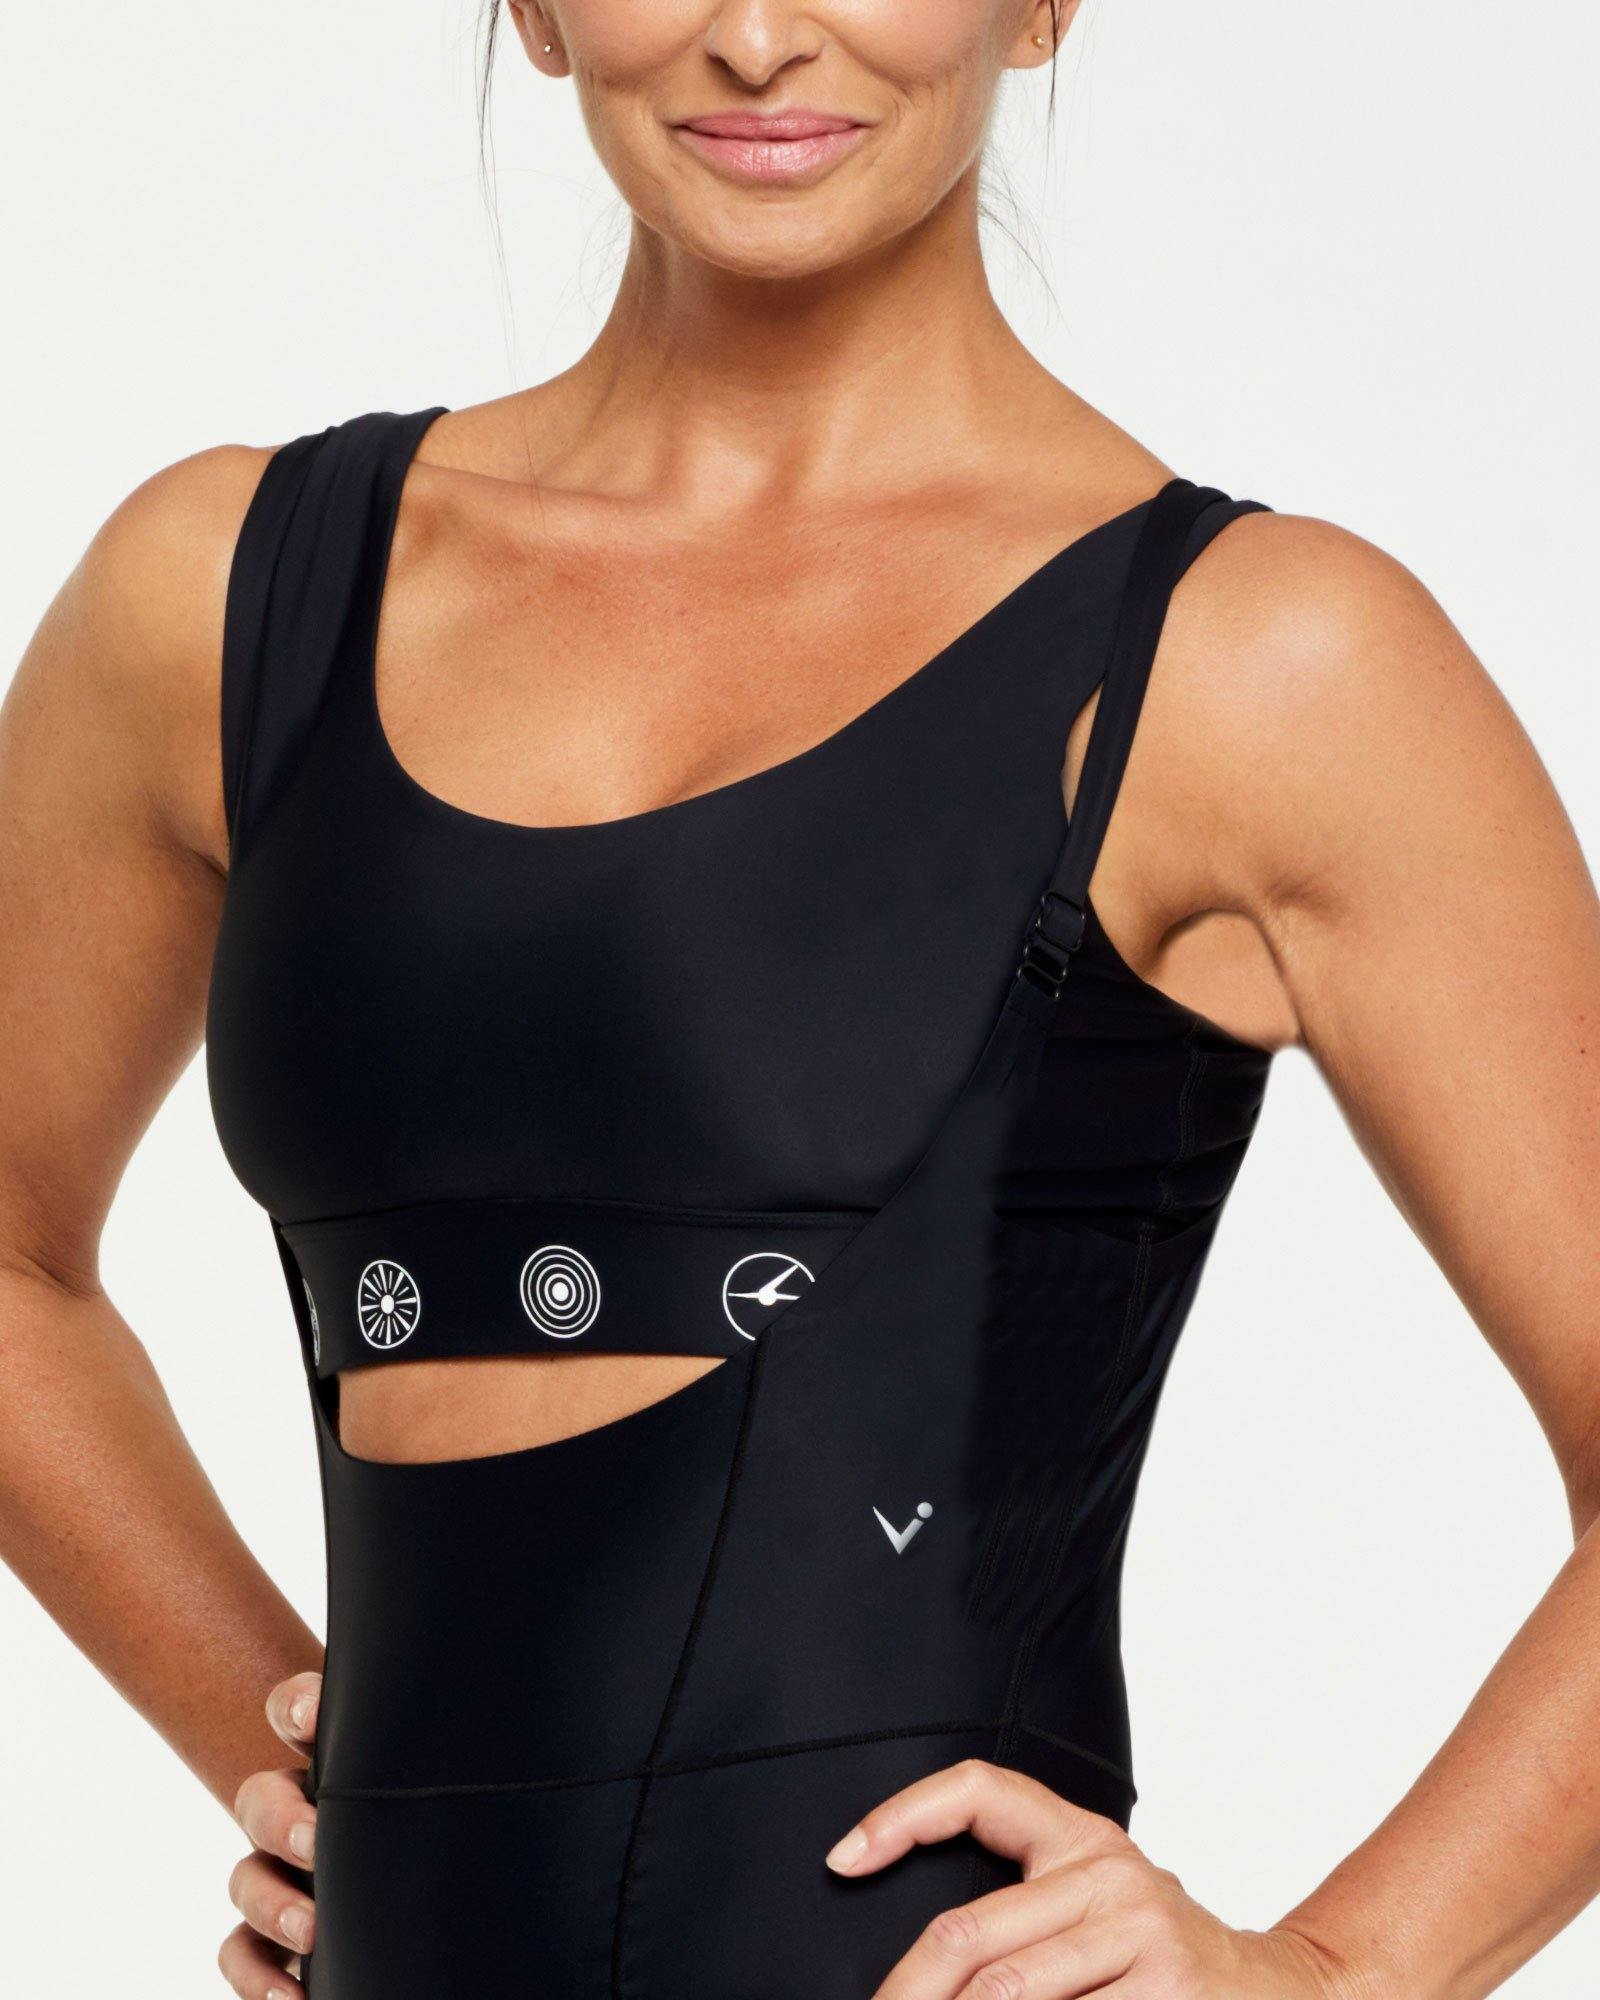 Companion RECTUS SHORT BODYSUIT worn low front with Pectoralis active top black with white symbols, high back, side view